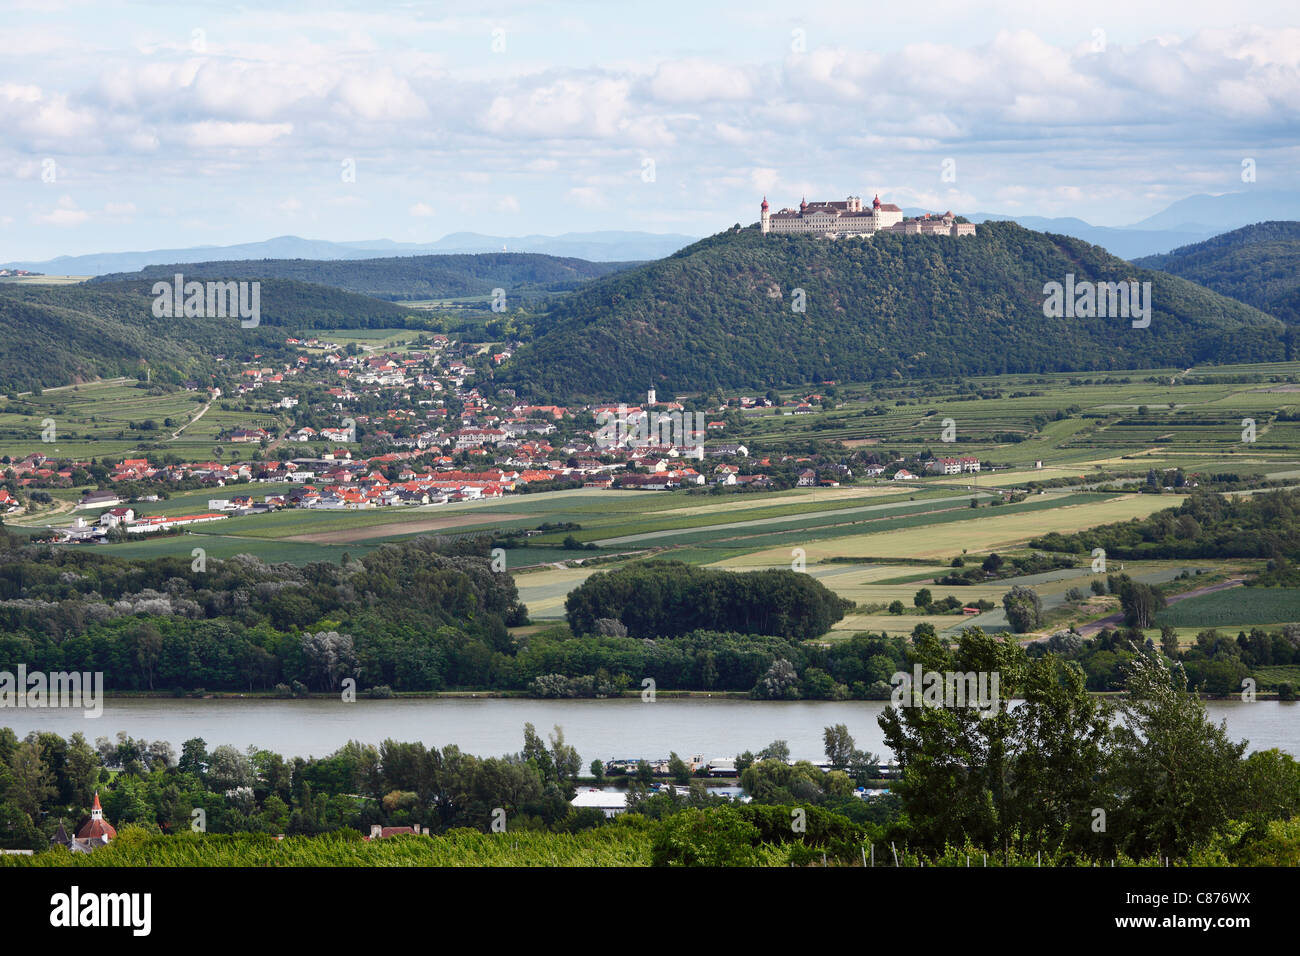 Austria, Lower Austria, Wachau, Furth bei Goettweig, View of Goettweig Abbey with village and Danube river - Stock Image